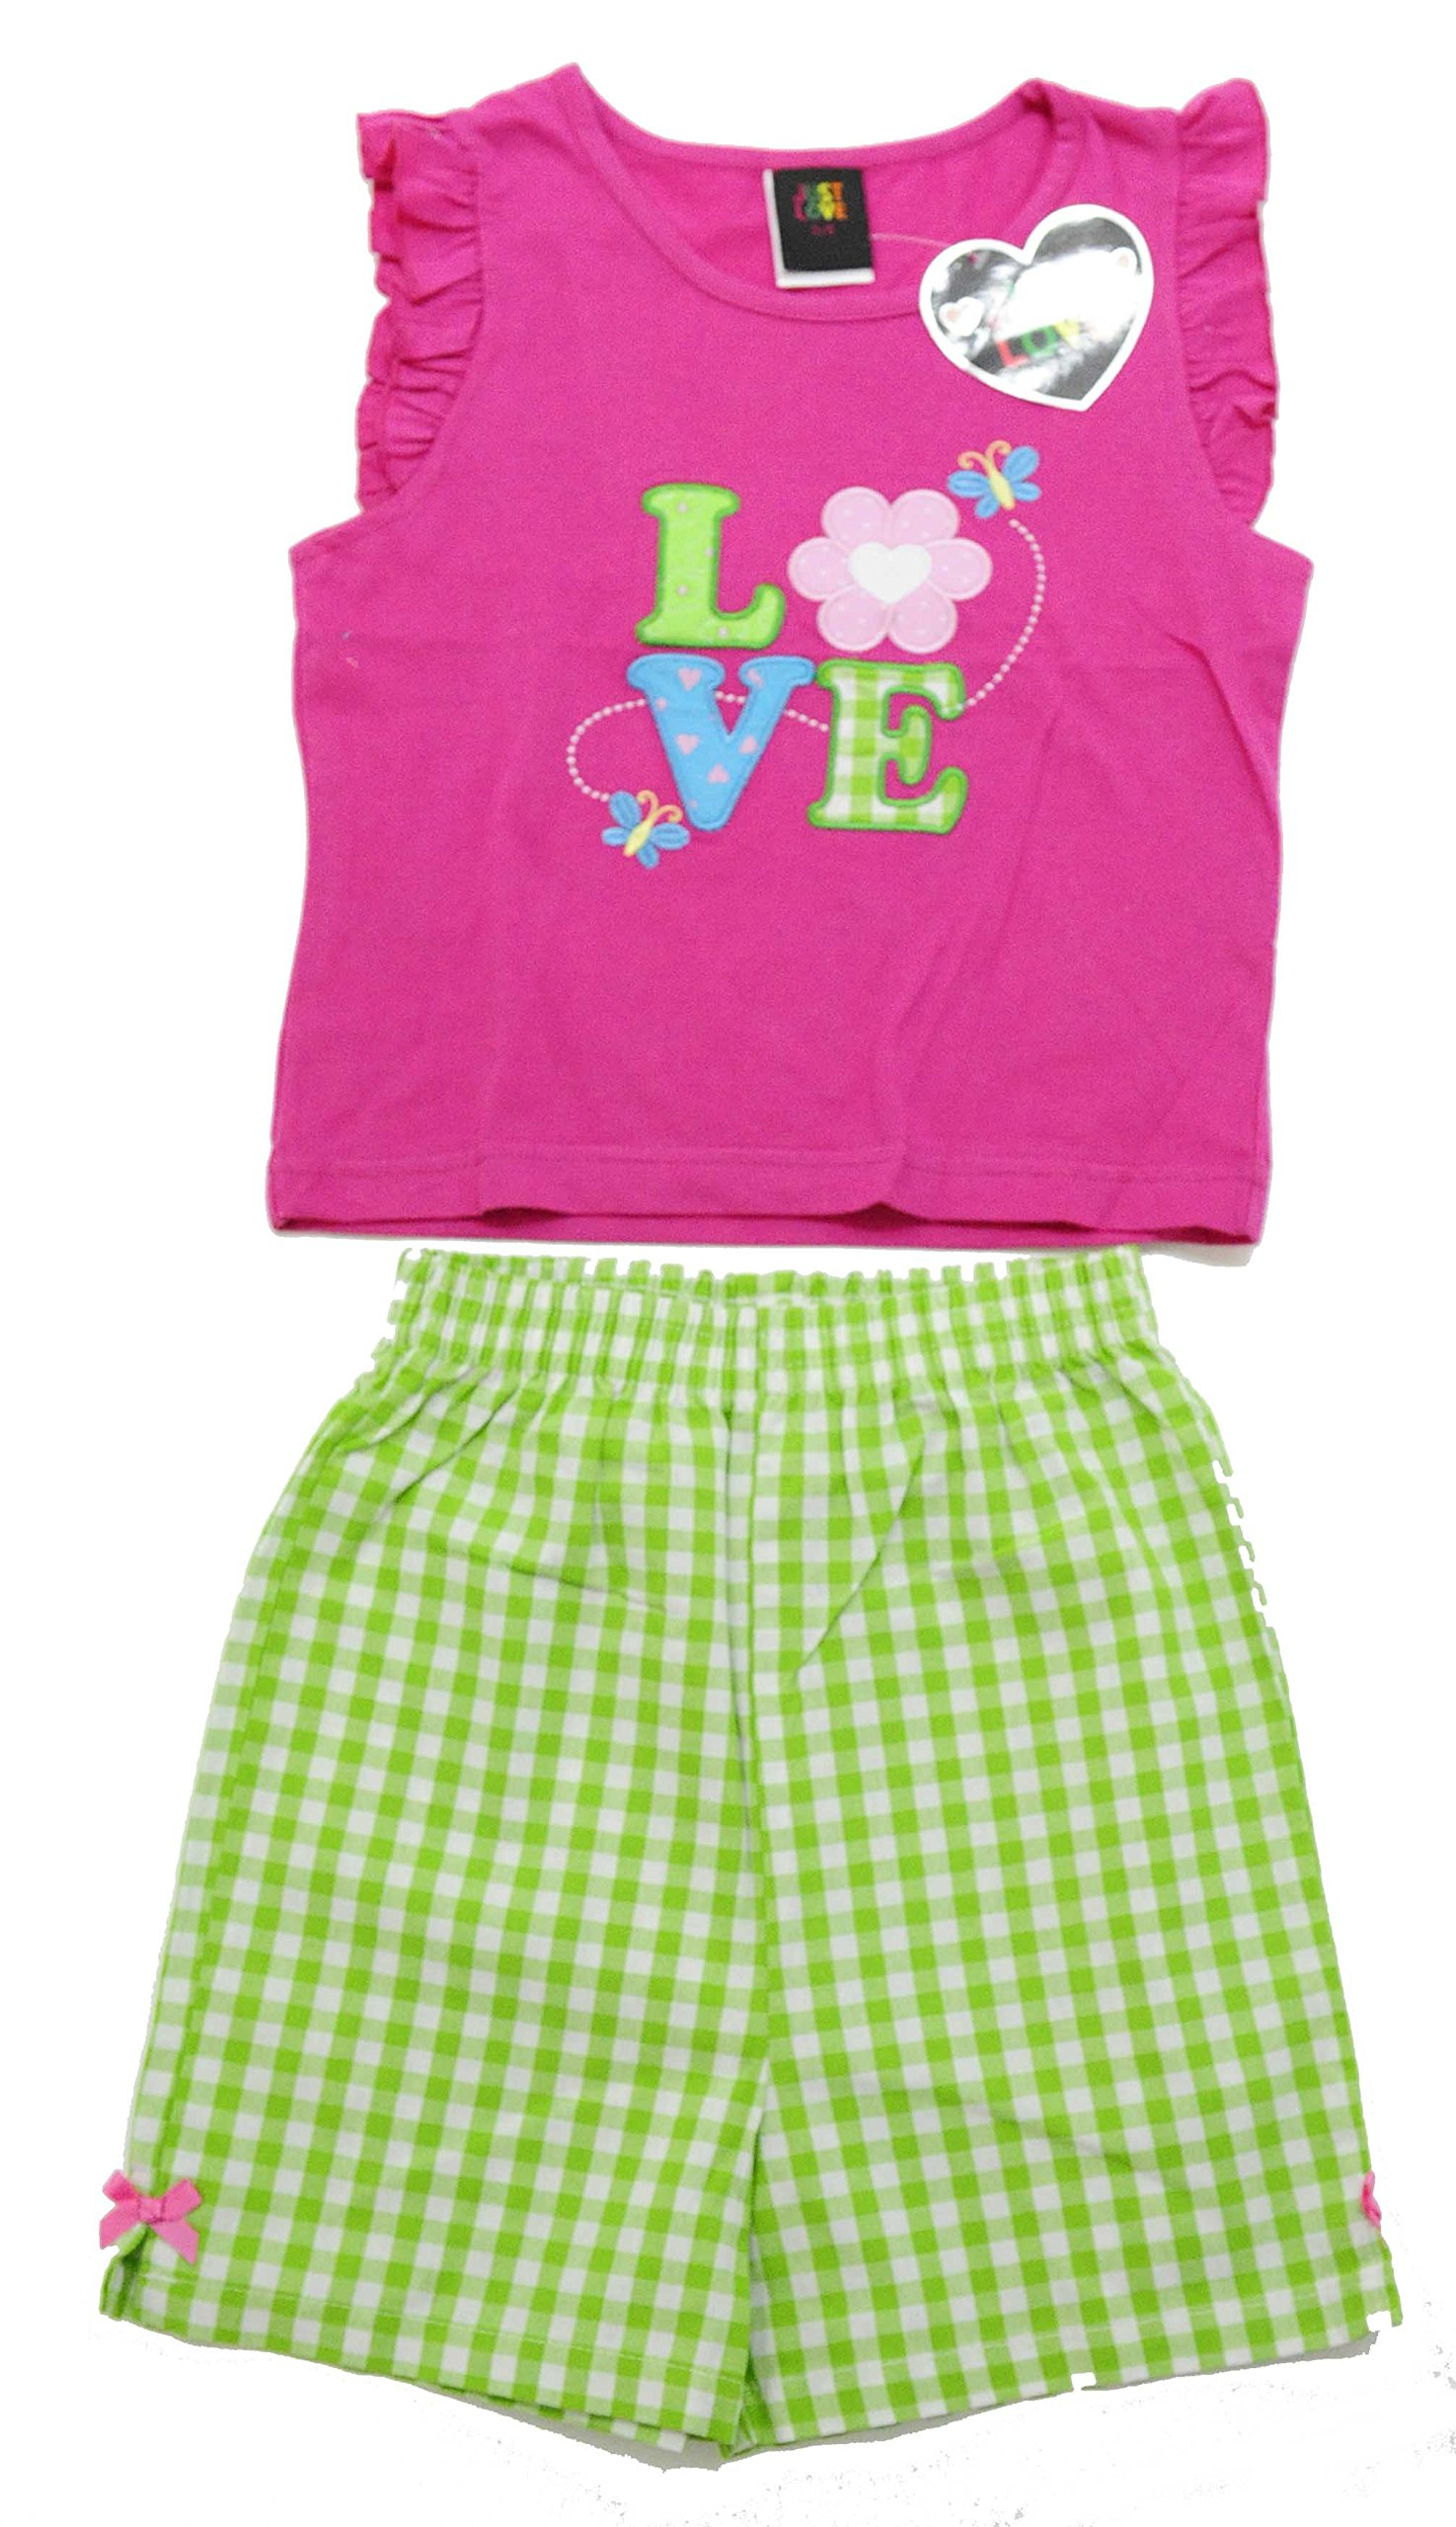 4003-3T Just Love Two Piece Girls Shorts Set